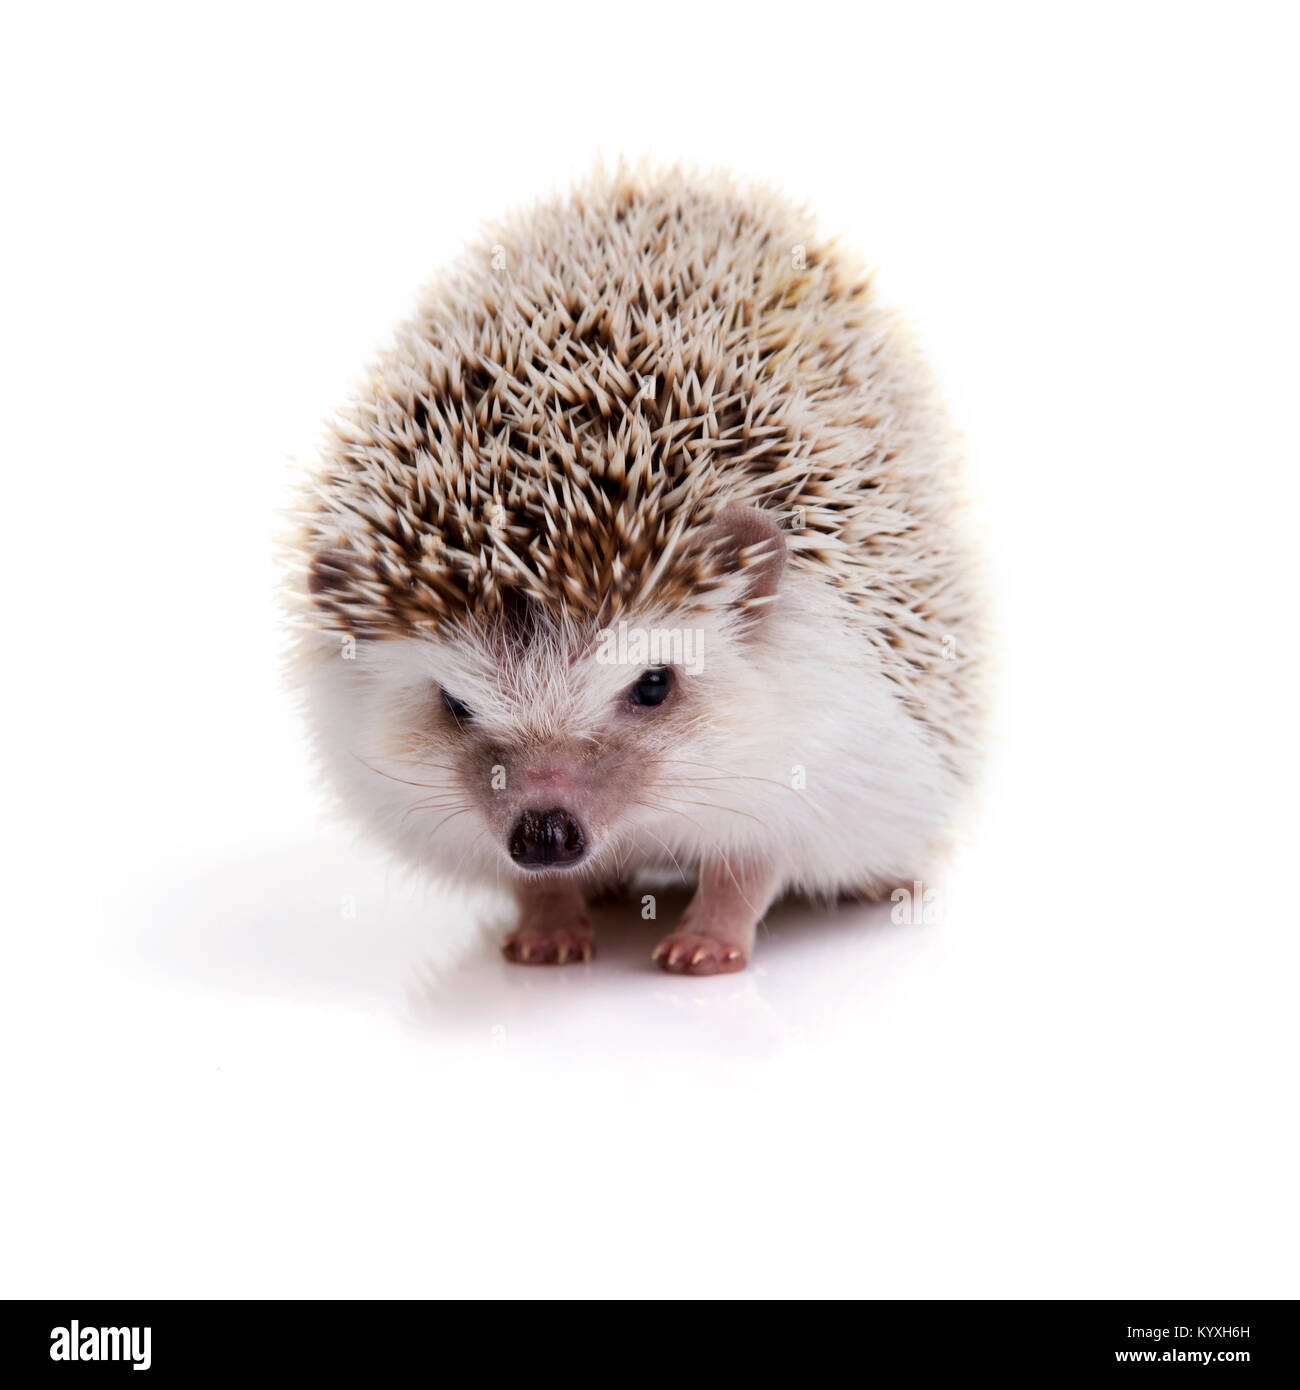 Little prickly hedgehog looking forward on white background. - Stock Image